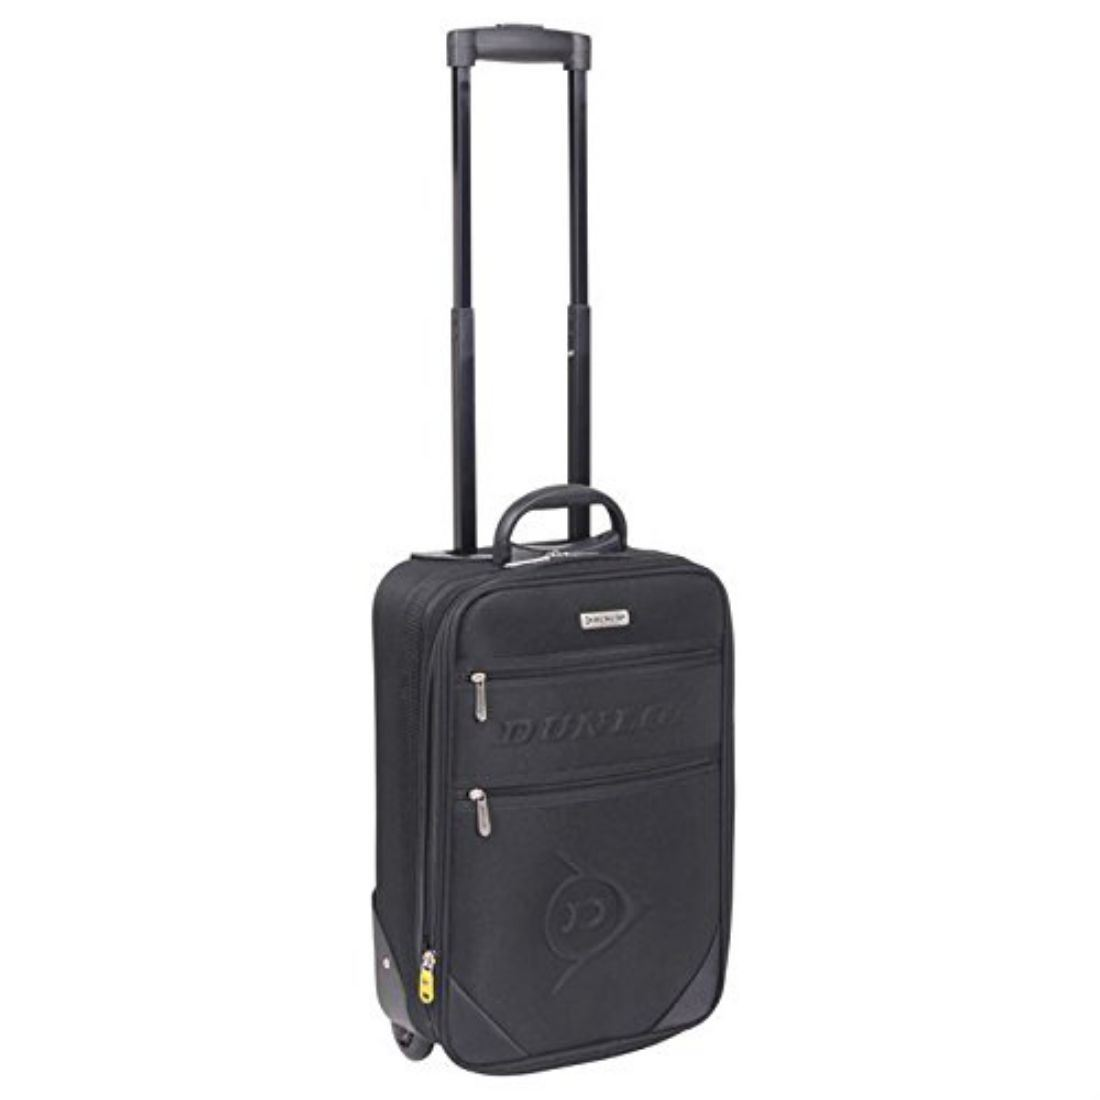 Dunlop Travel Luggage Lightweight Wheeled Holdall Carryall